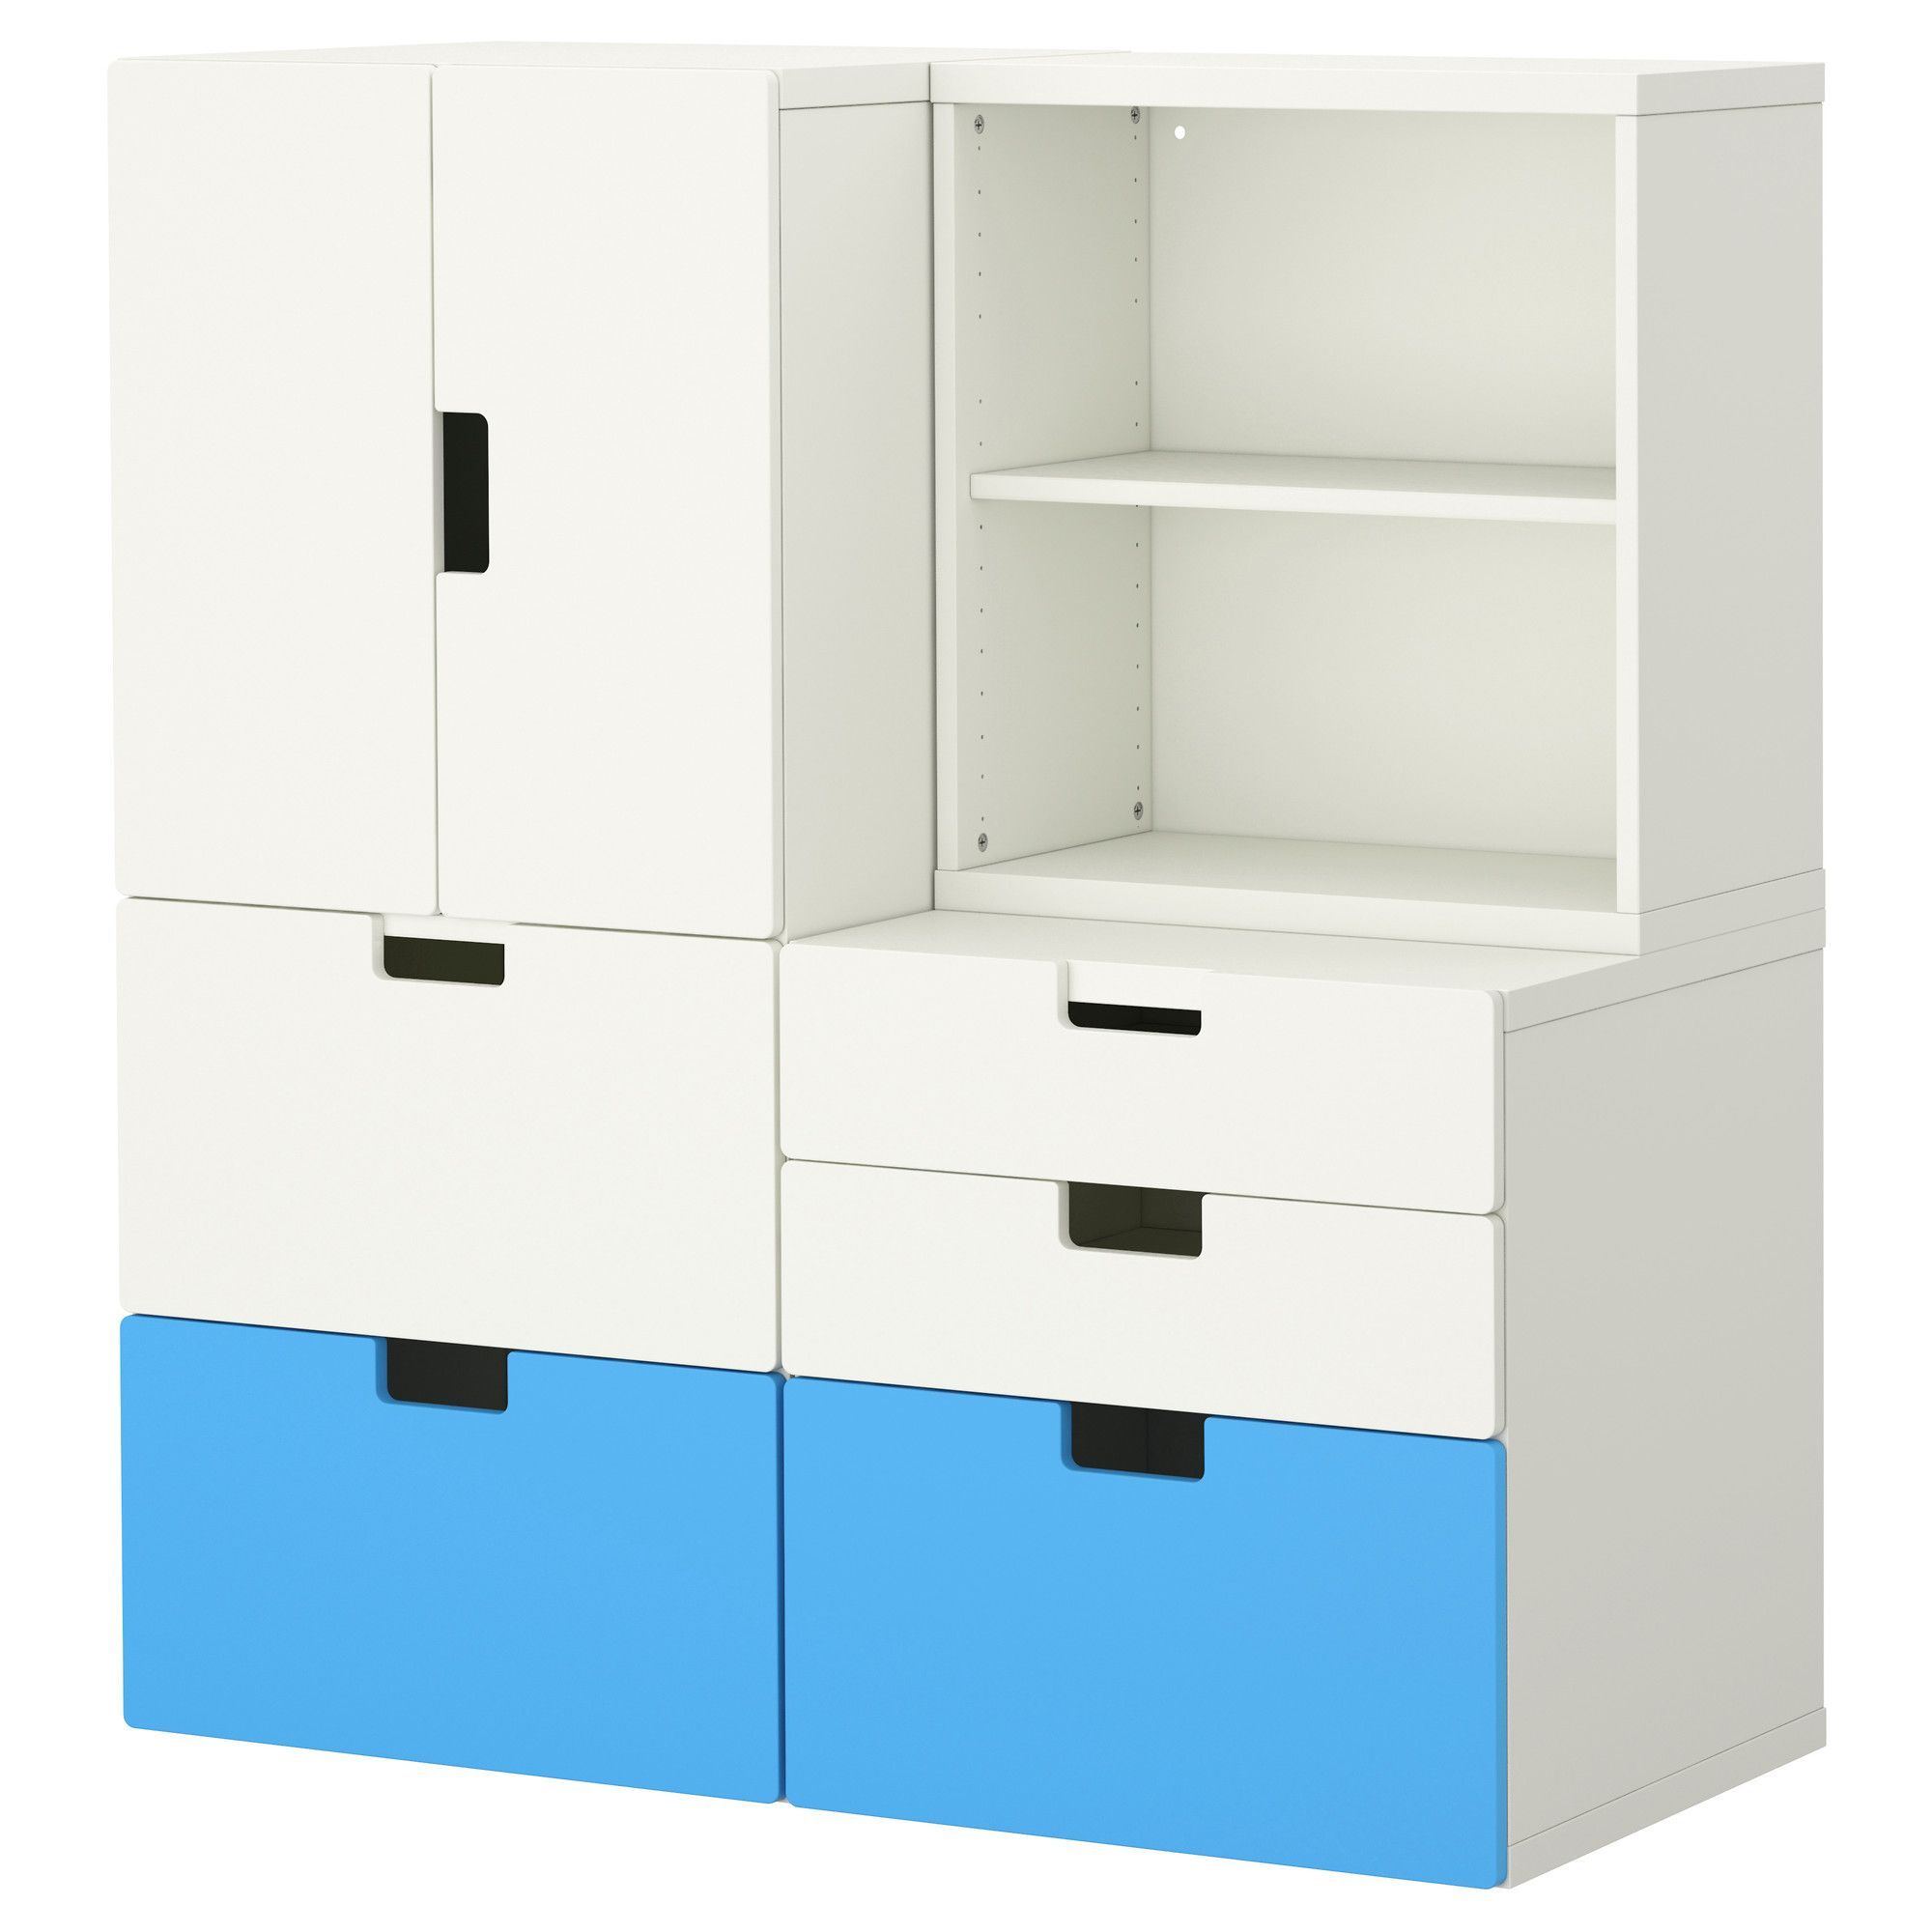 Ikea System Stuva Storage Combination W Doors Drawers Ikea Office